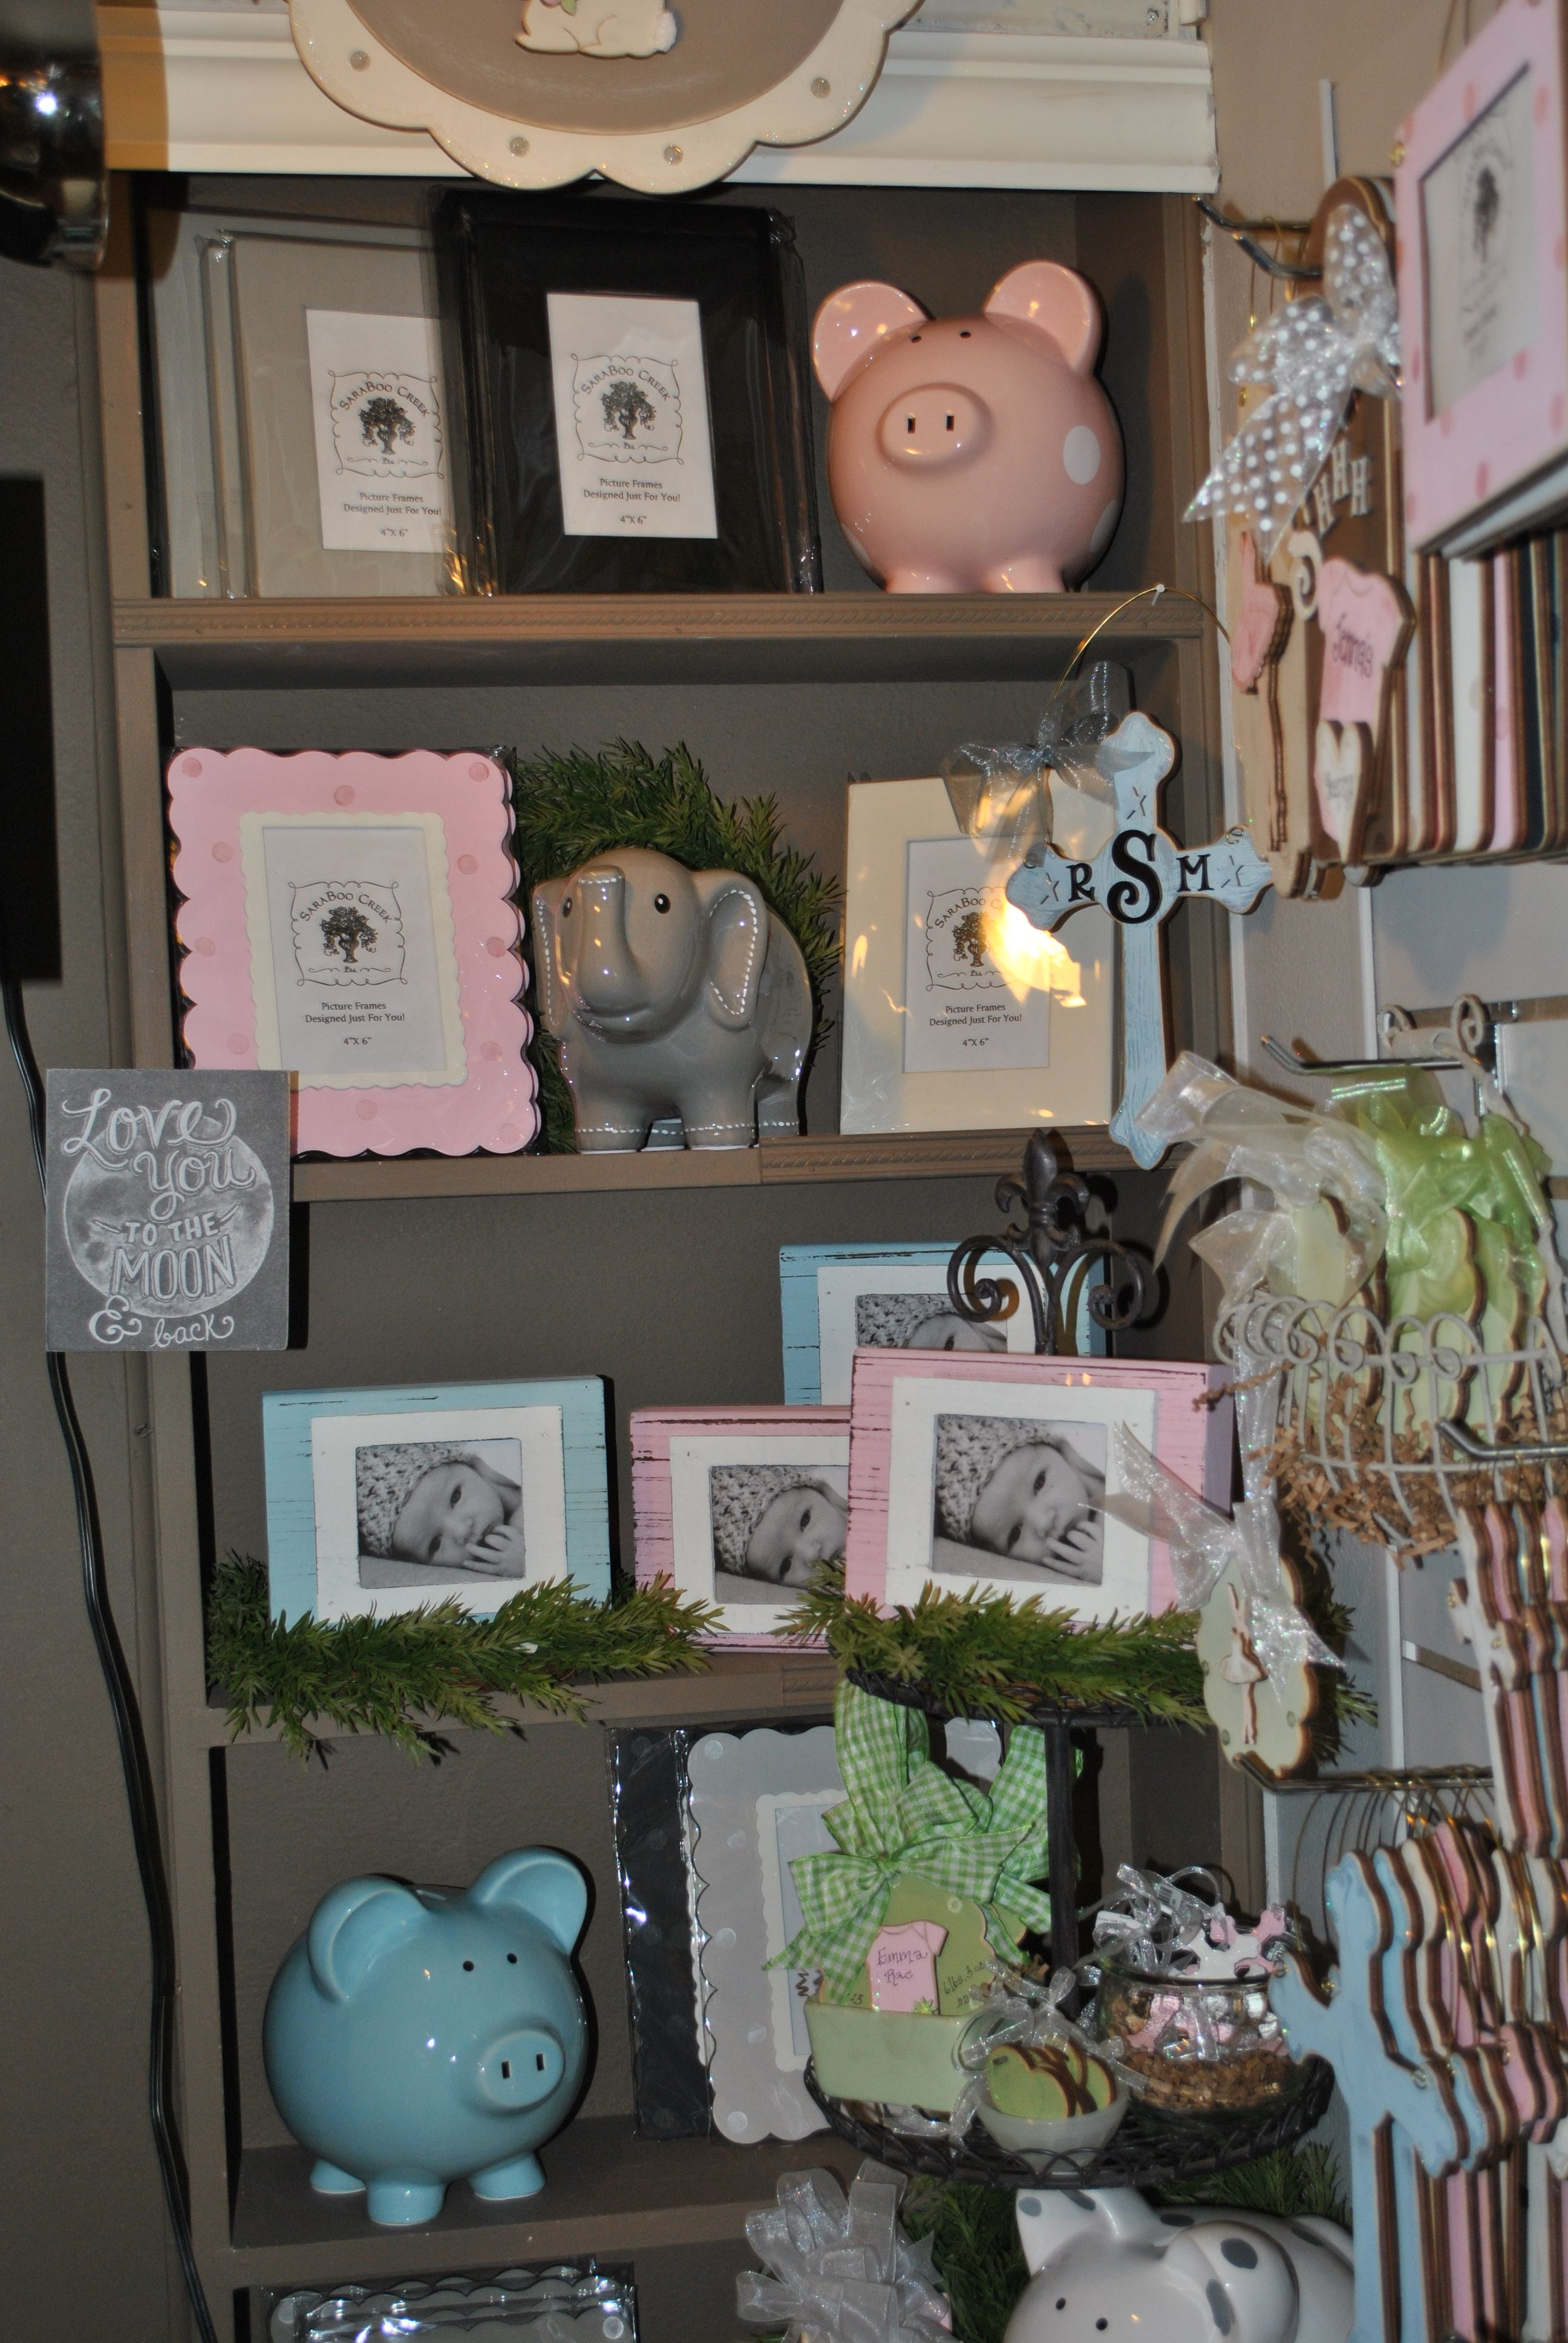 Come and check out all new store displays, as well as all things Spring!